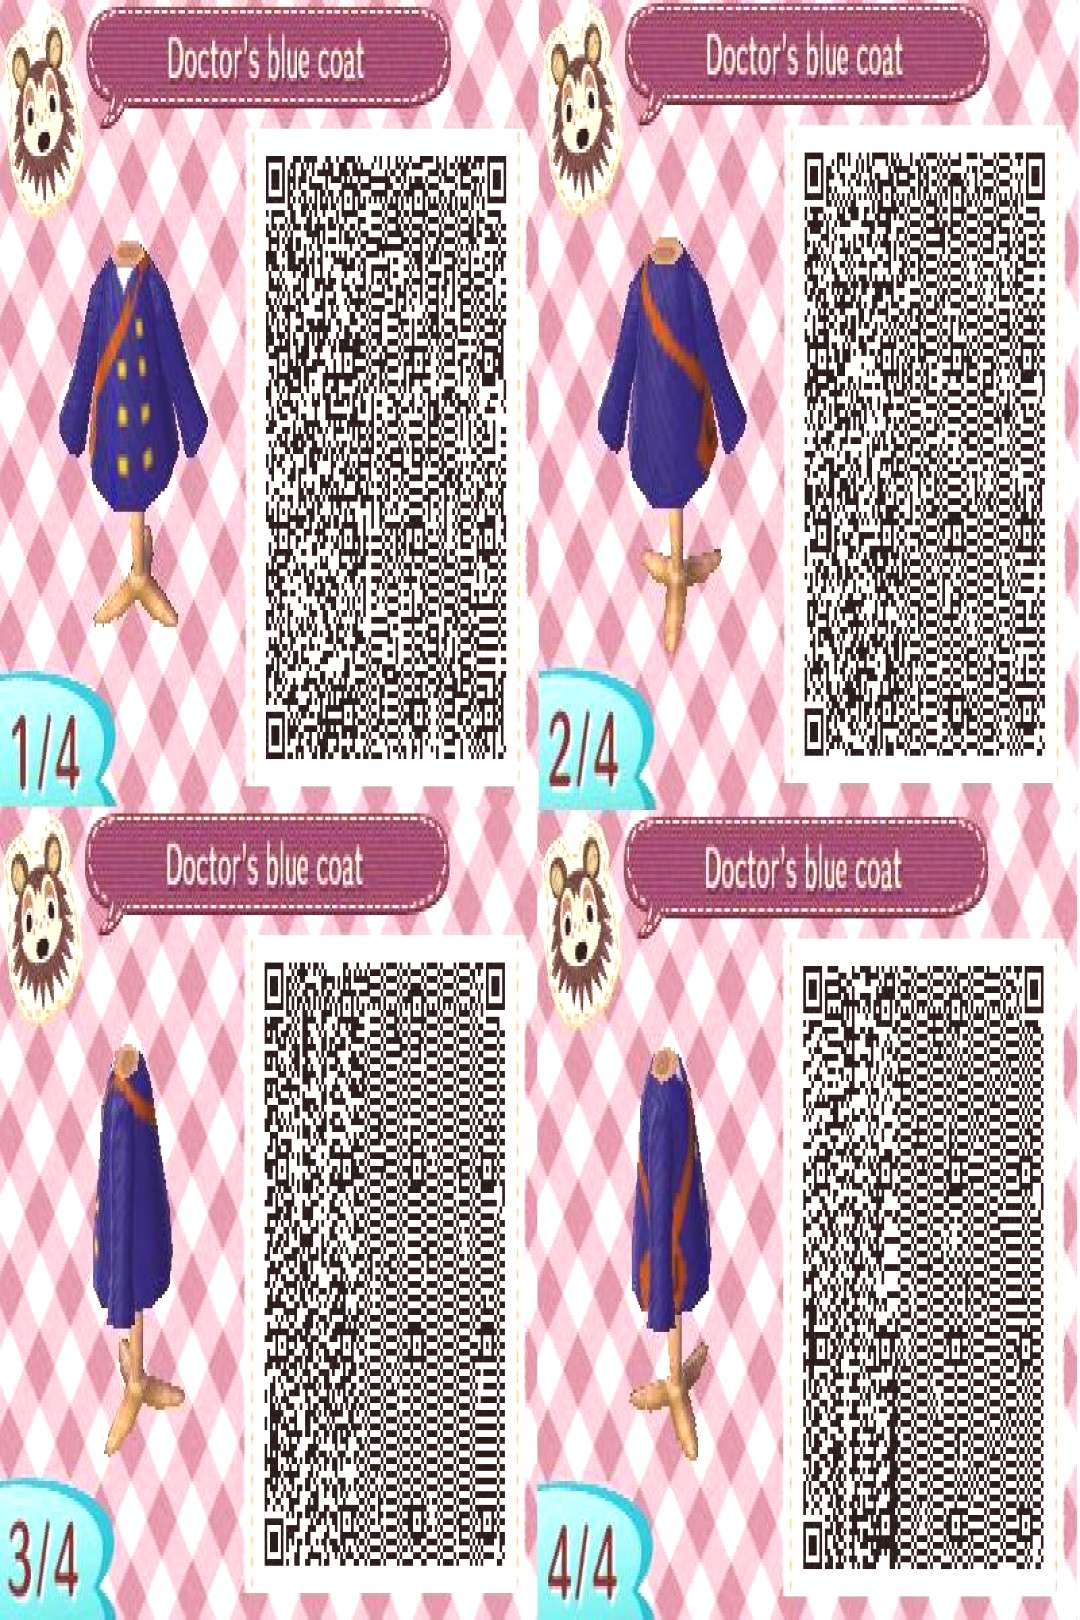 8th doctors alternate coat animal crossing style by impact358 on DeviantArt -